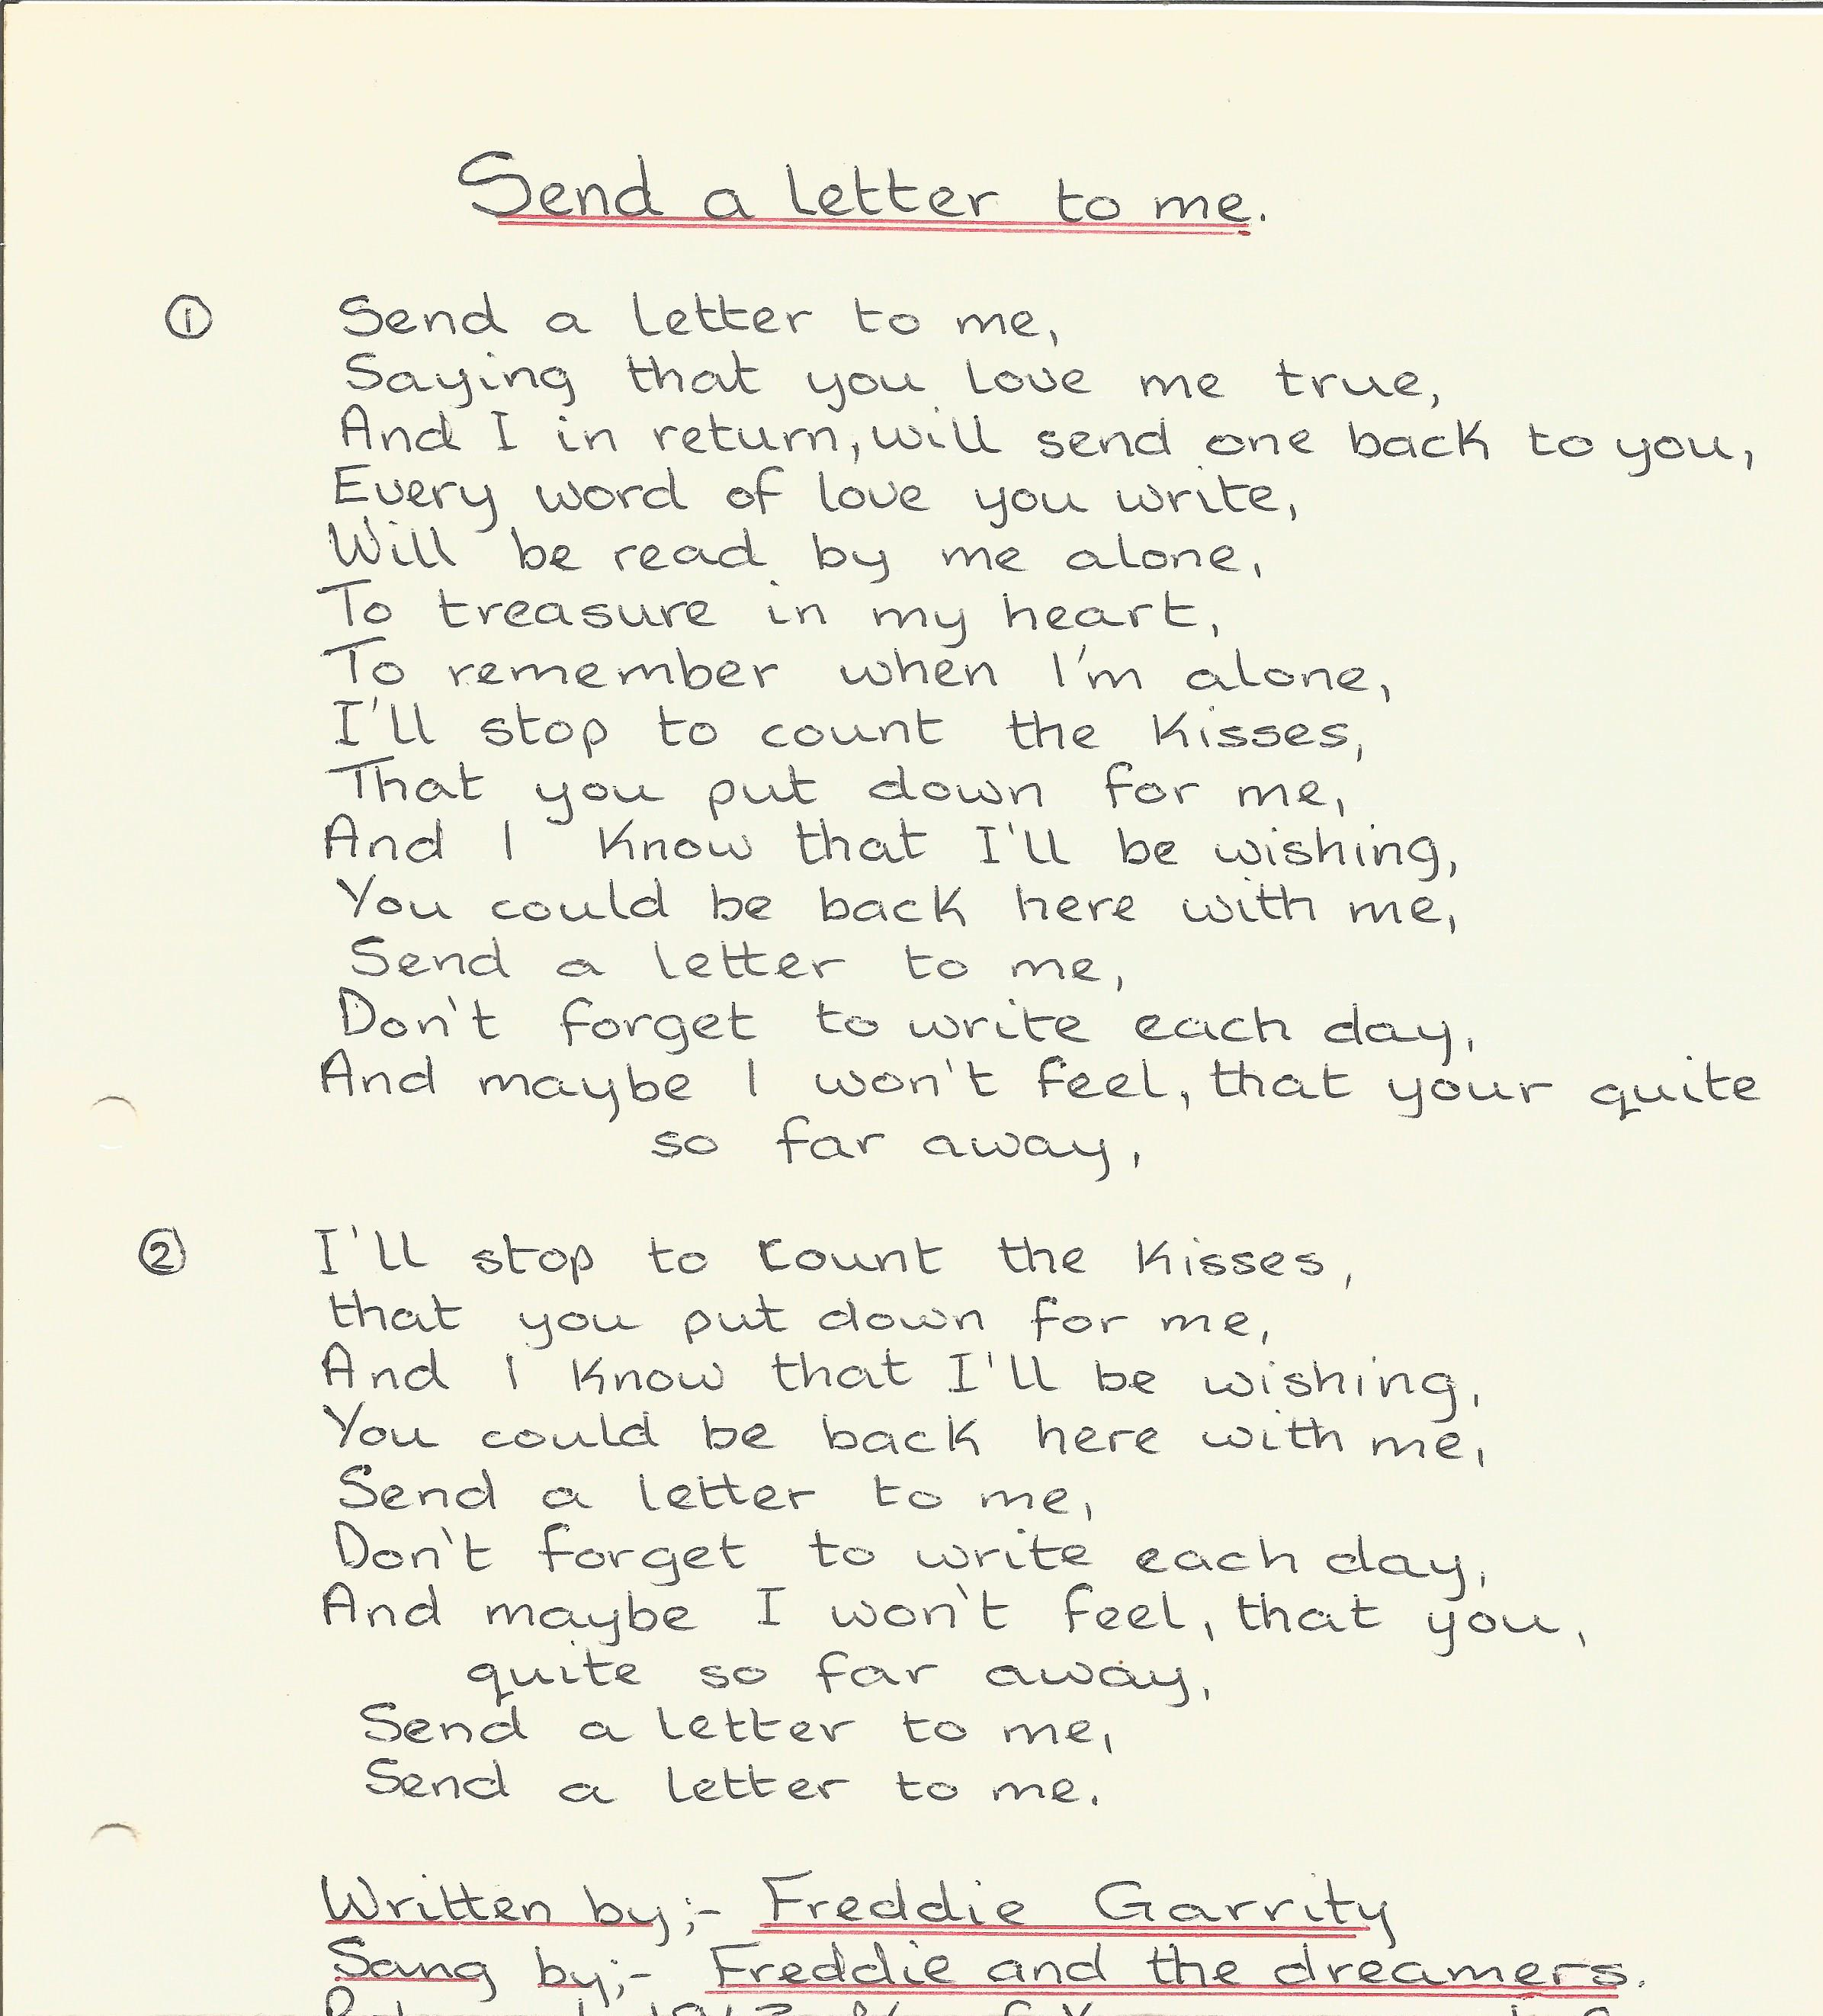 Freddie and The Dreamers 1960s Band Signed Lyrics Page Send A Letter To Me With Photo. Good